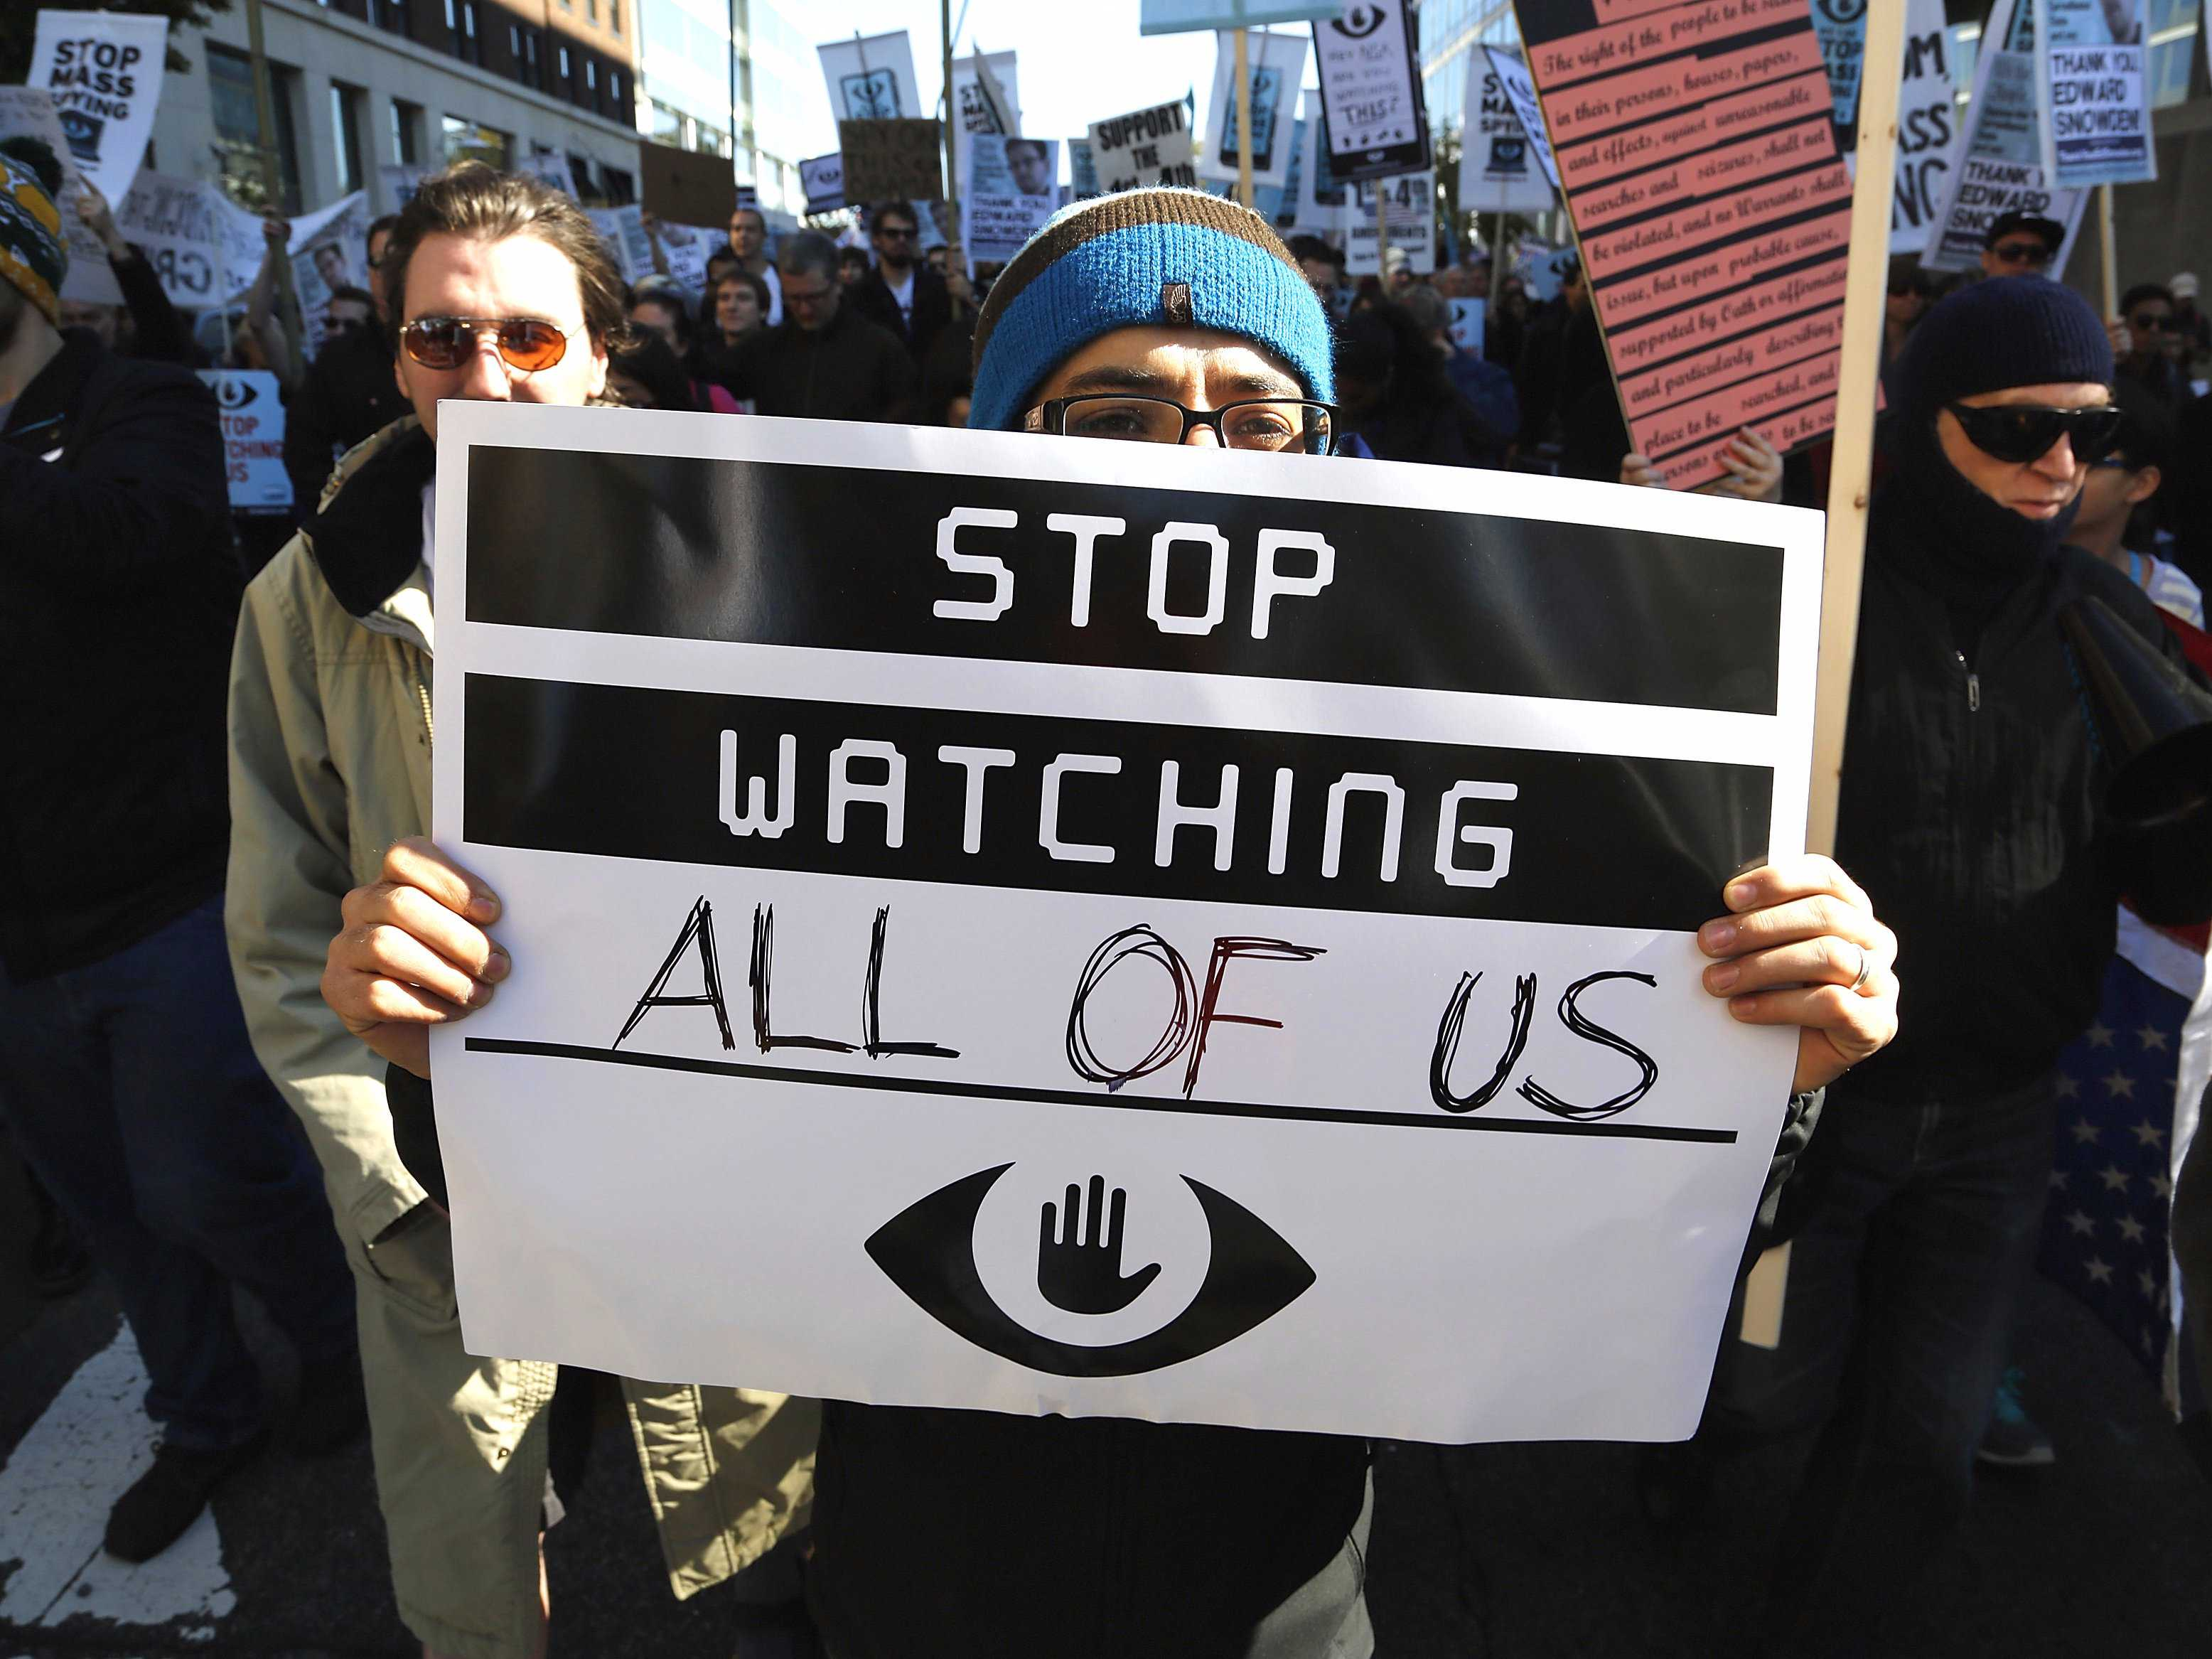 UK Under Attack For Mass Surveillance Law